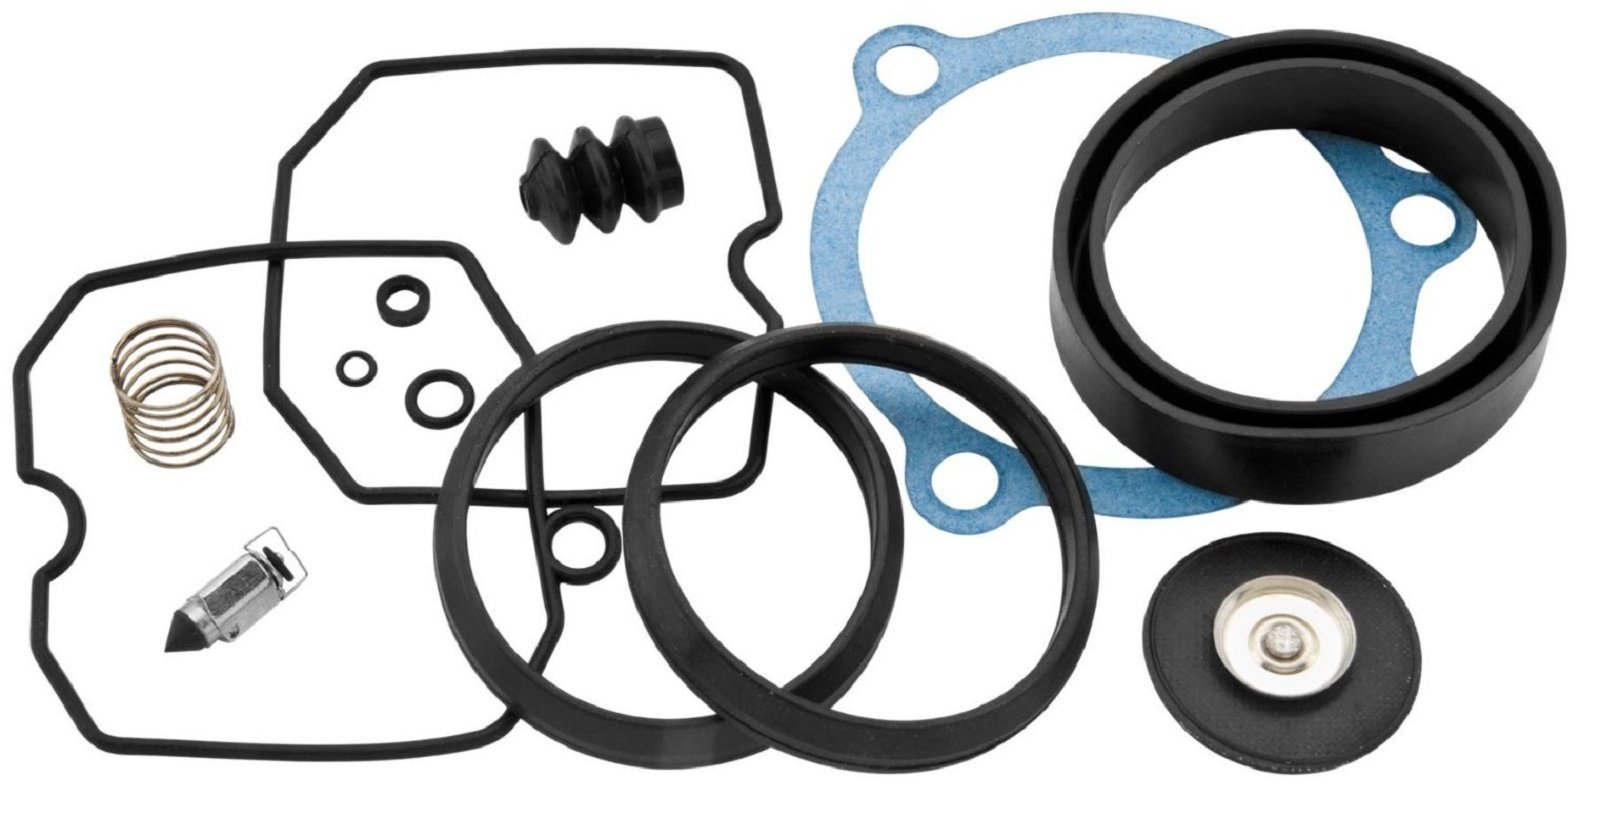 Cycle Craft Carb Rebuild Kit for Keihin CV 20709